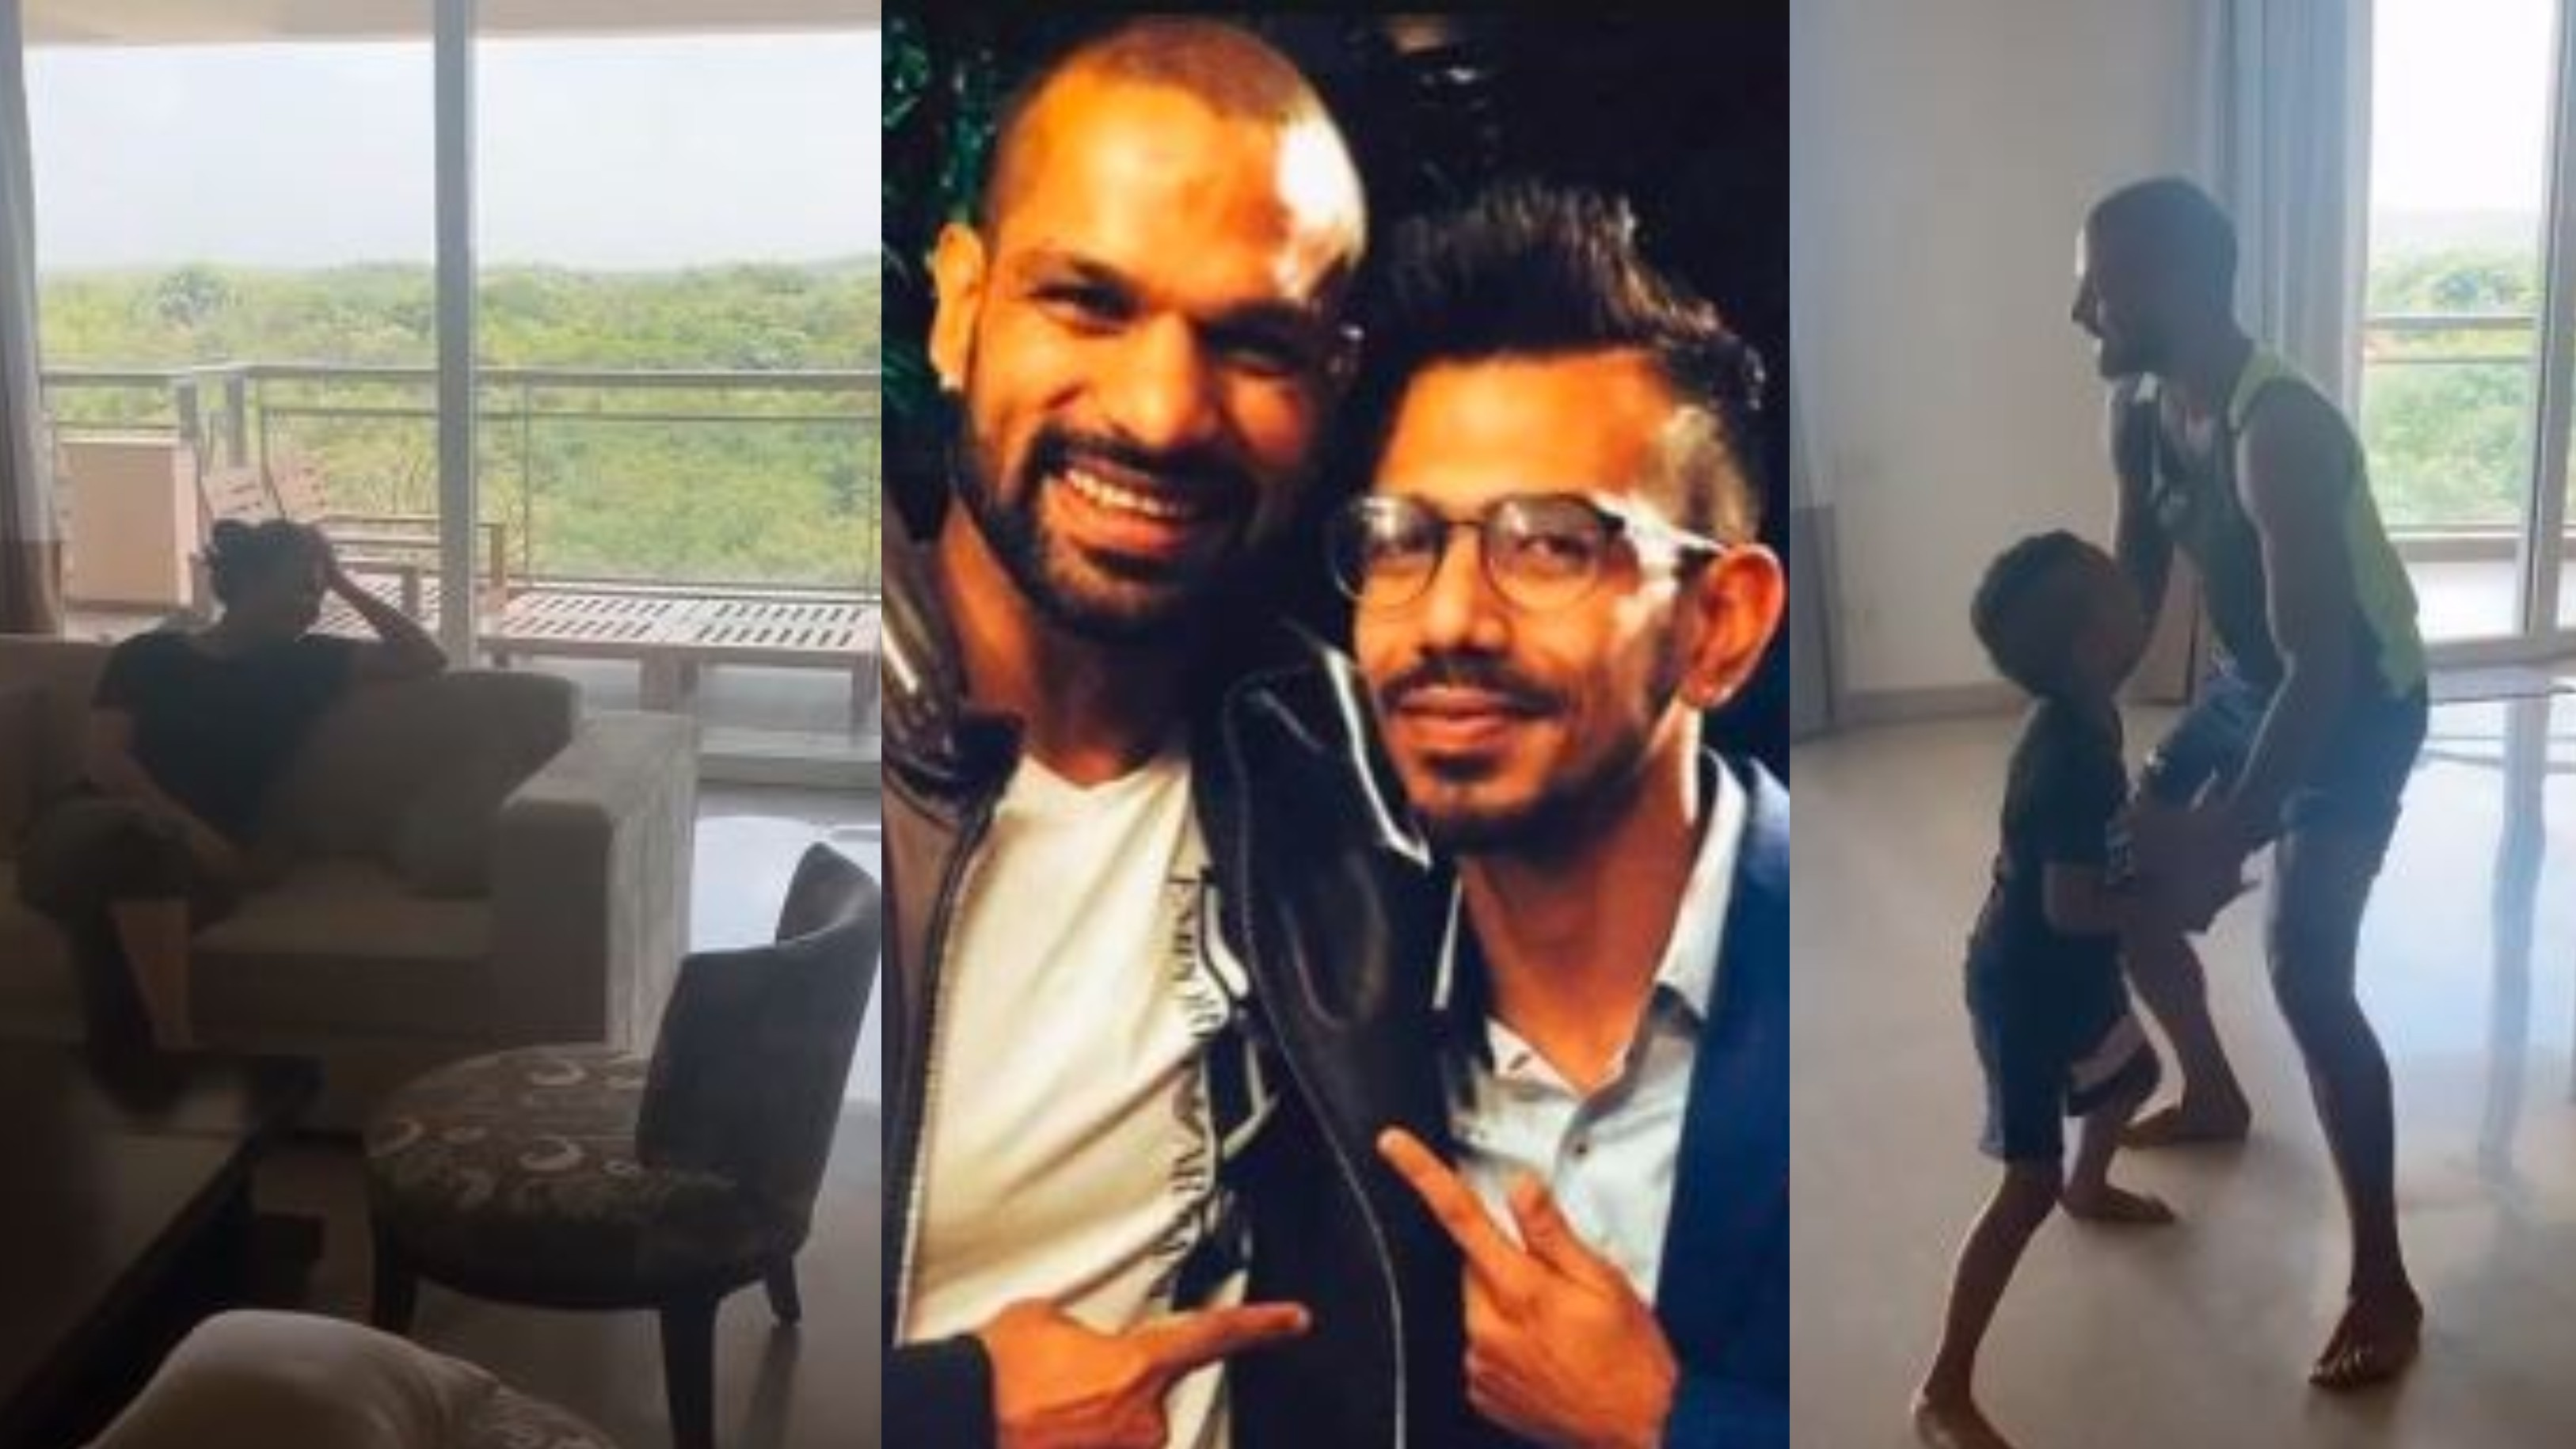 WATCH- Shikhar Dhawan fails to convince wife Aesha to dance with him; Chahal gives funny reaction